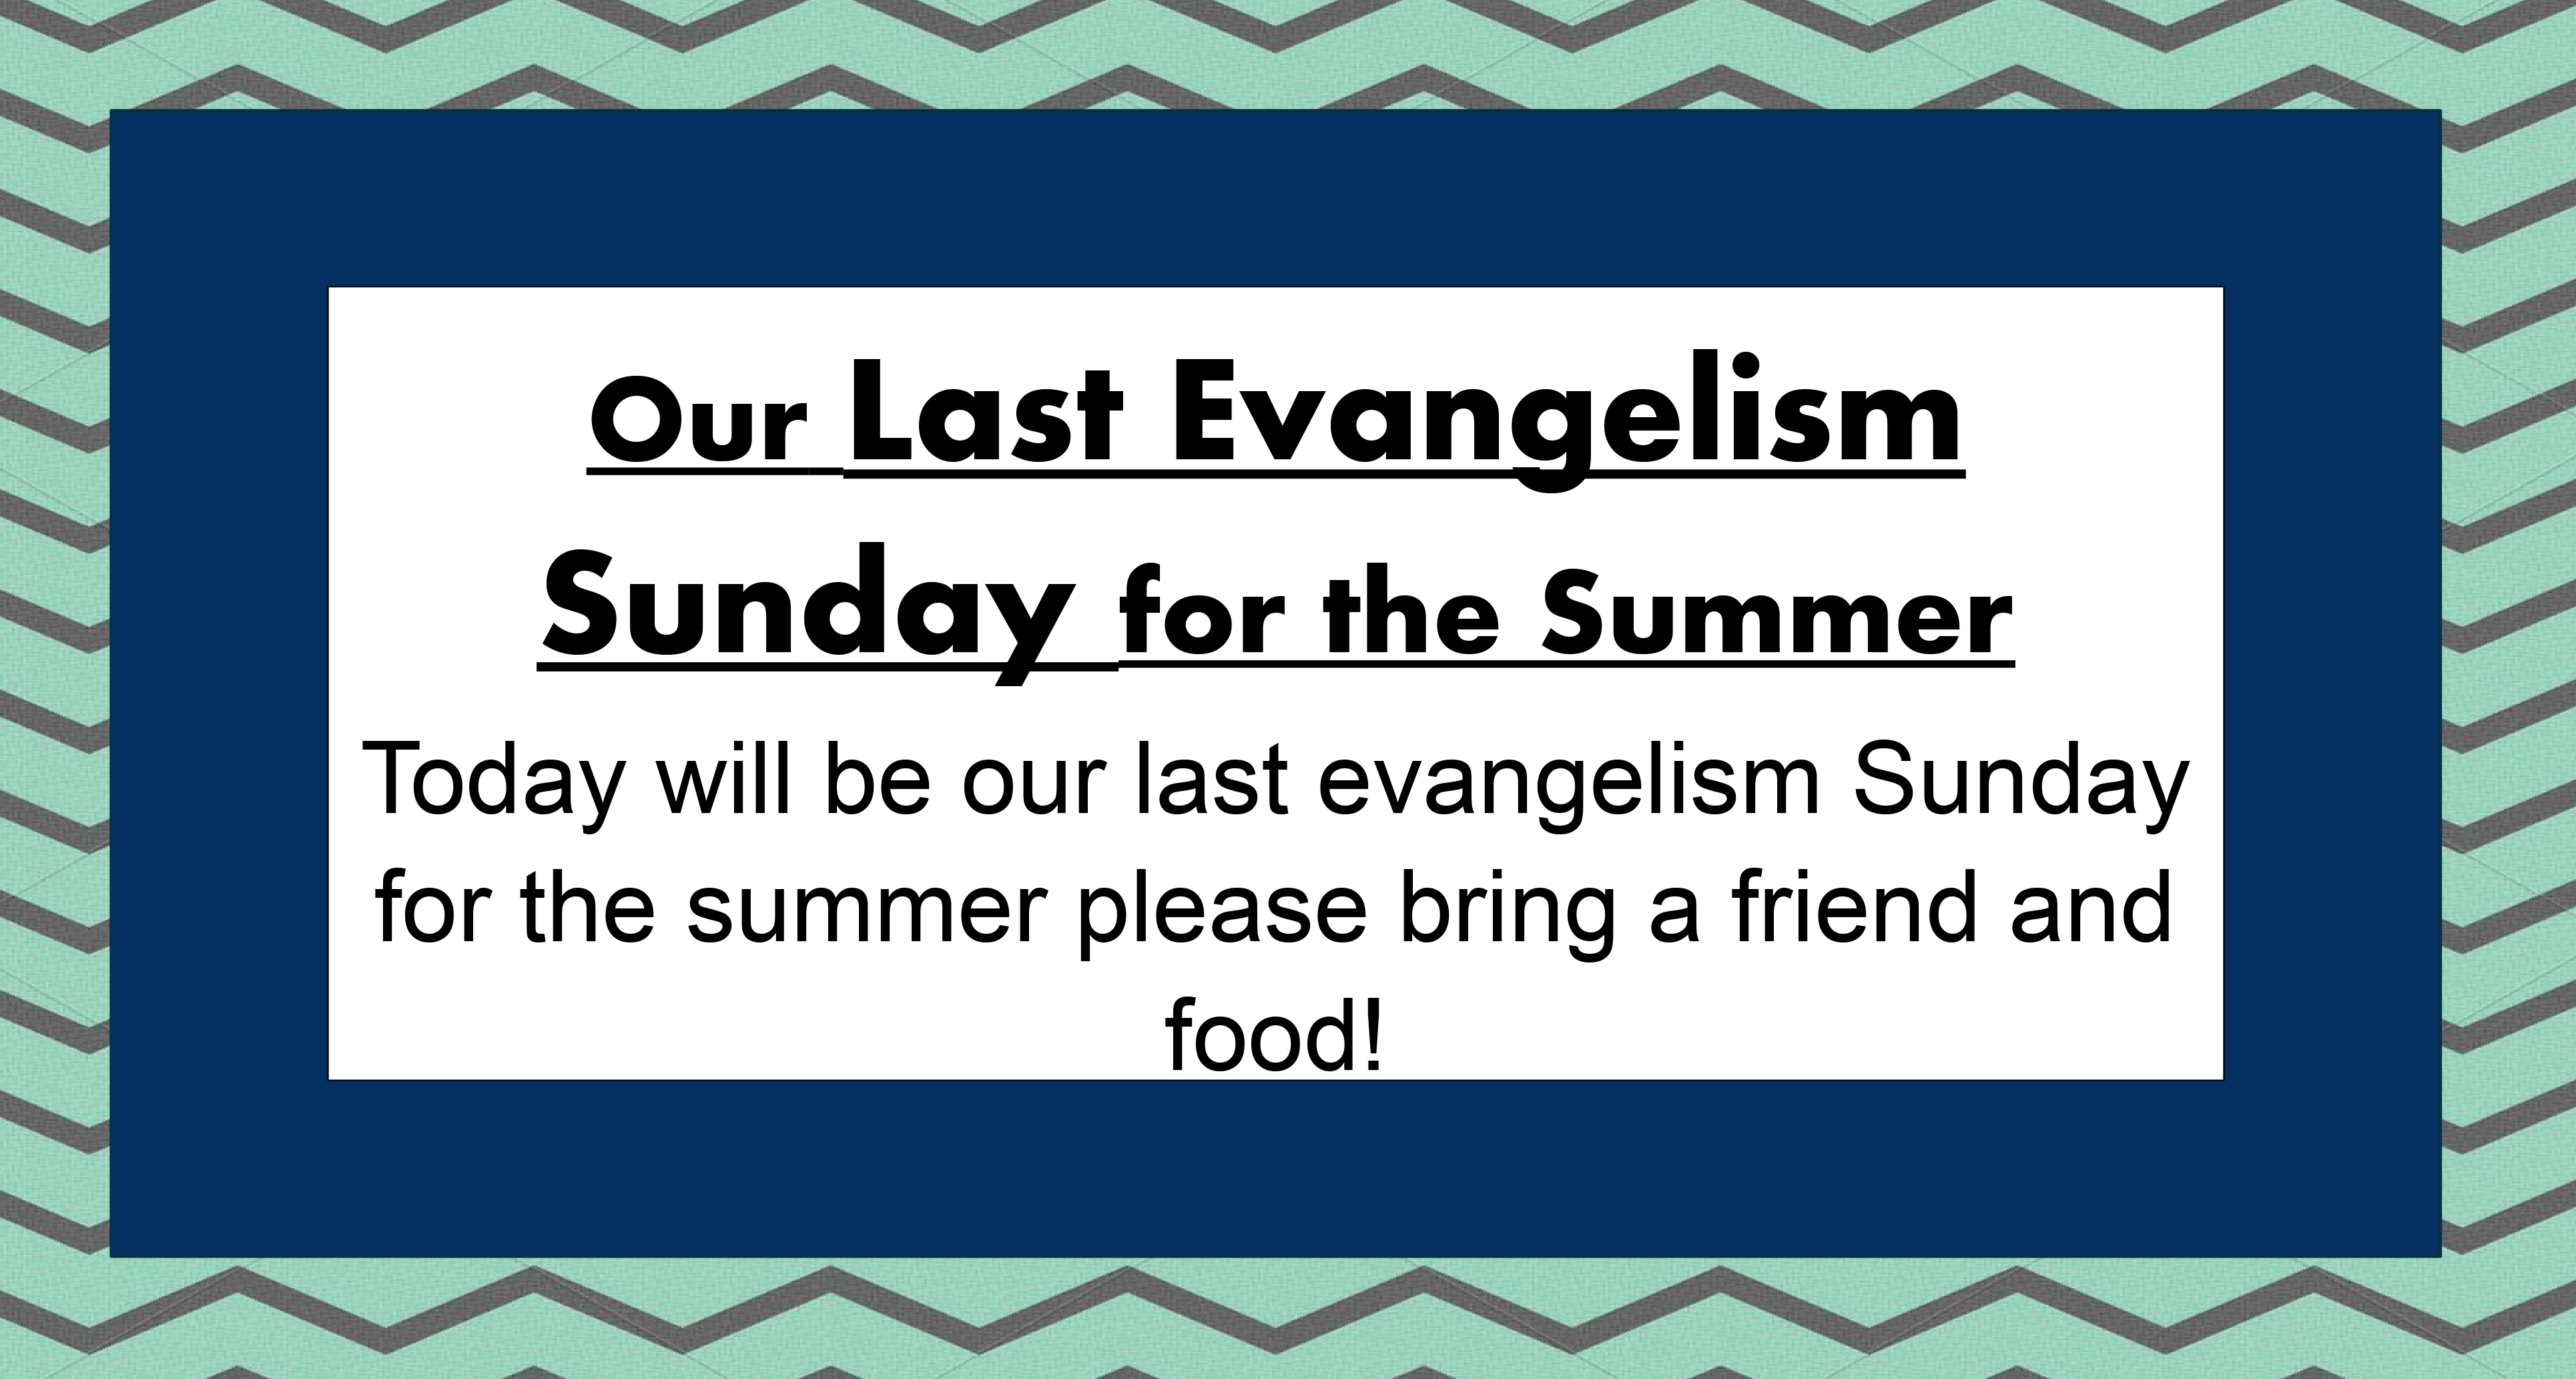 Our Last Evangelism Sunday